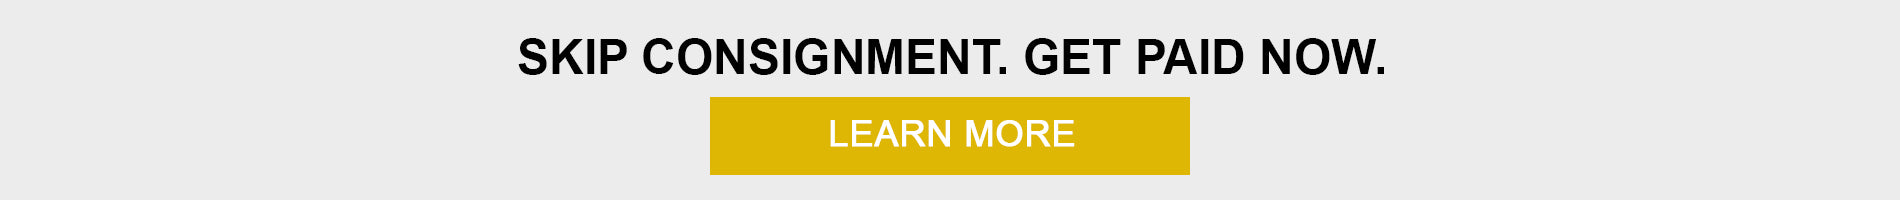 Skip Consignment. Get Paid Now. Click here to learn more.